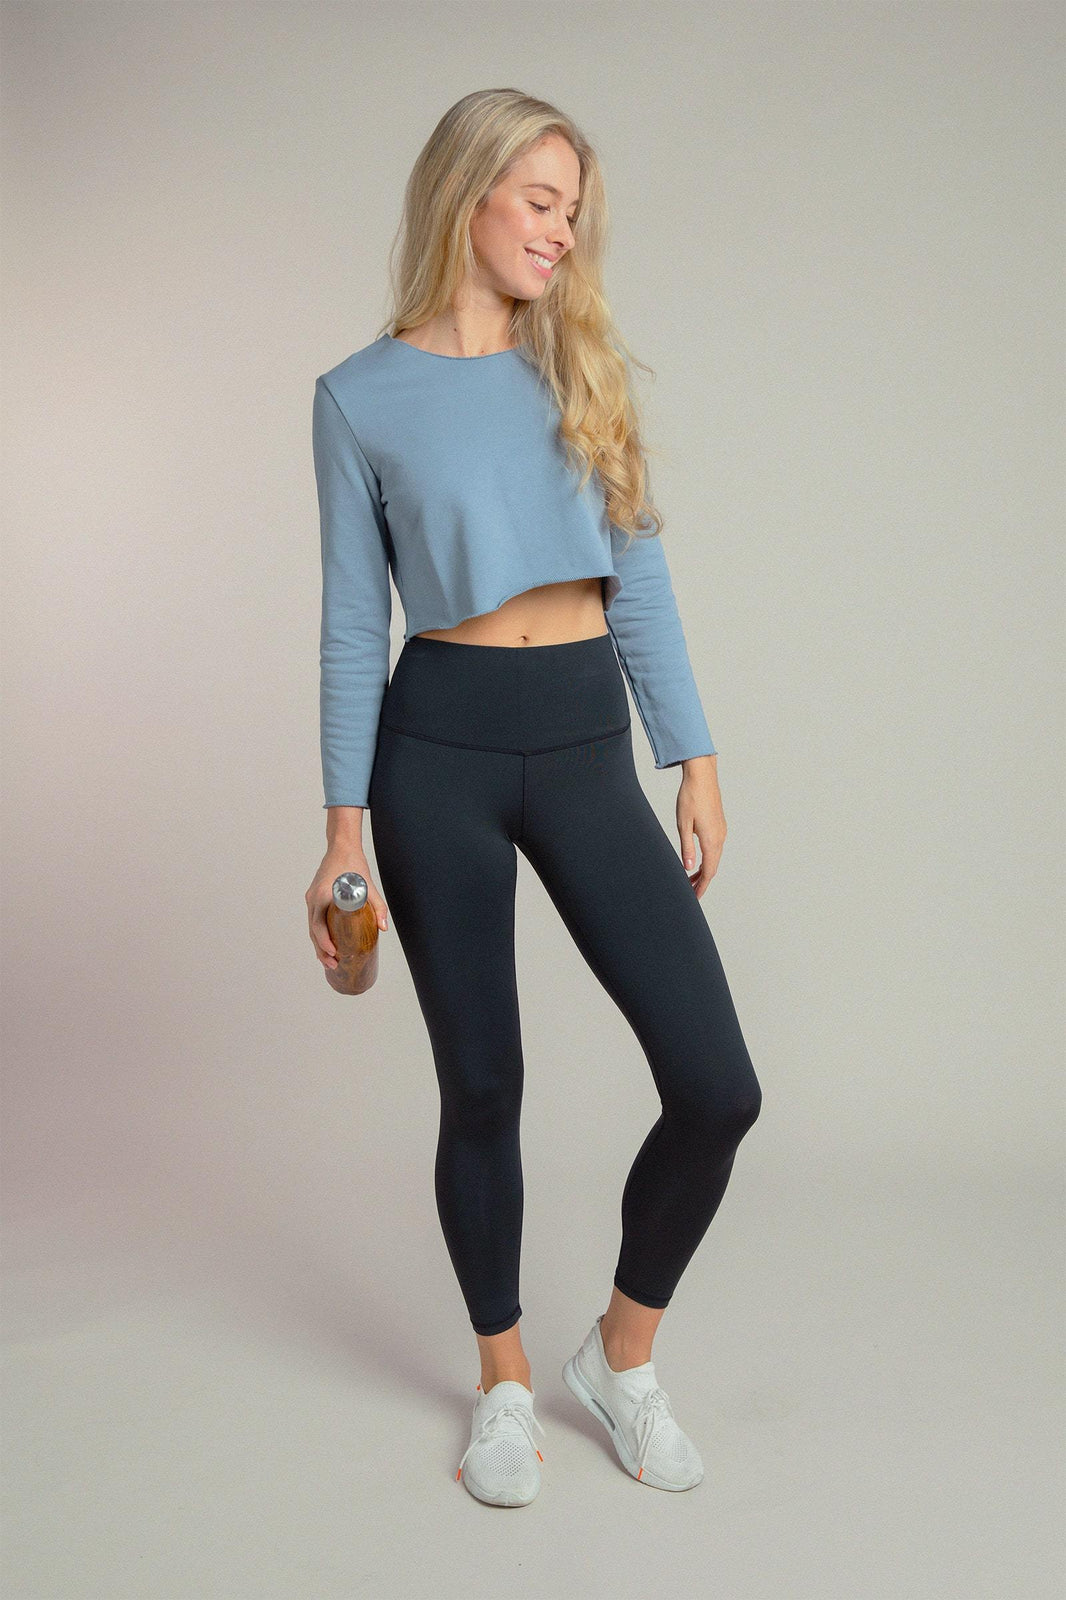 Crop Sweatshirt in Dusty Blue